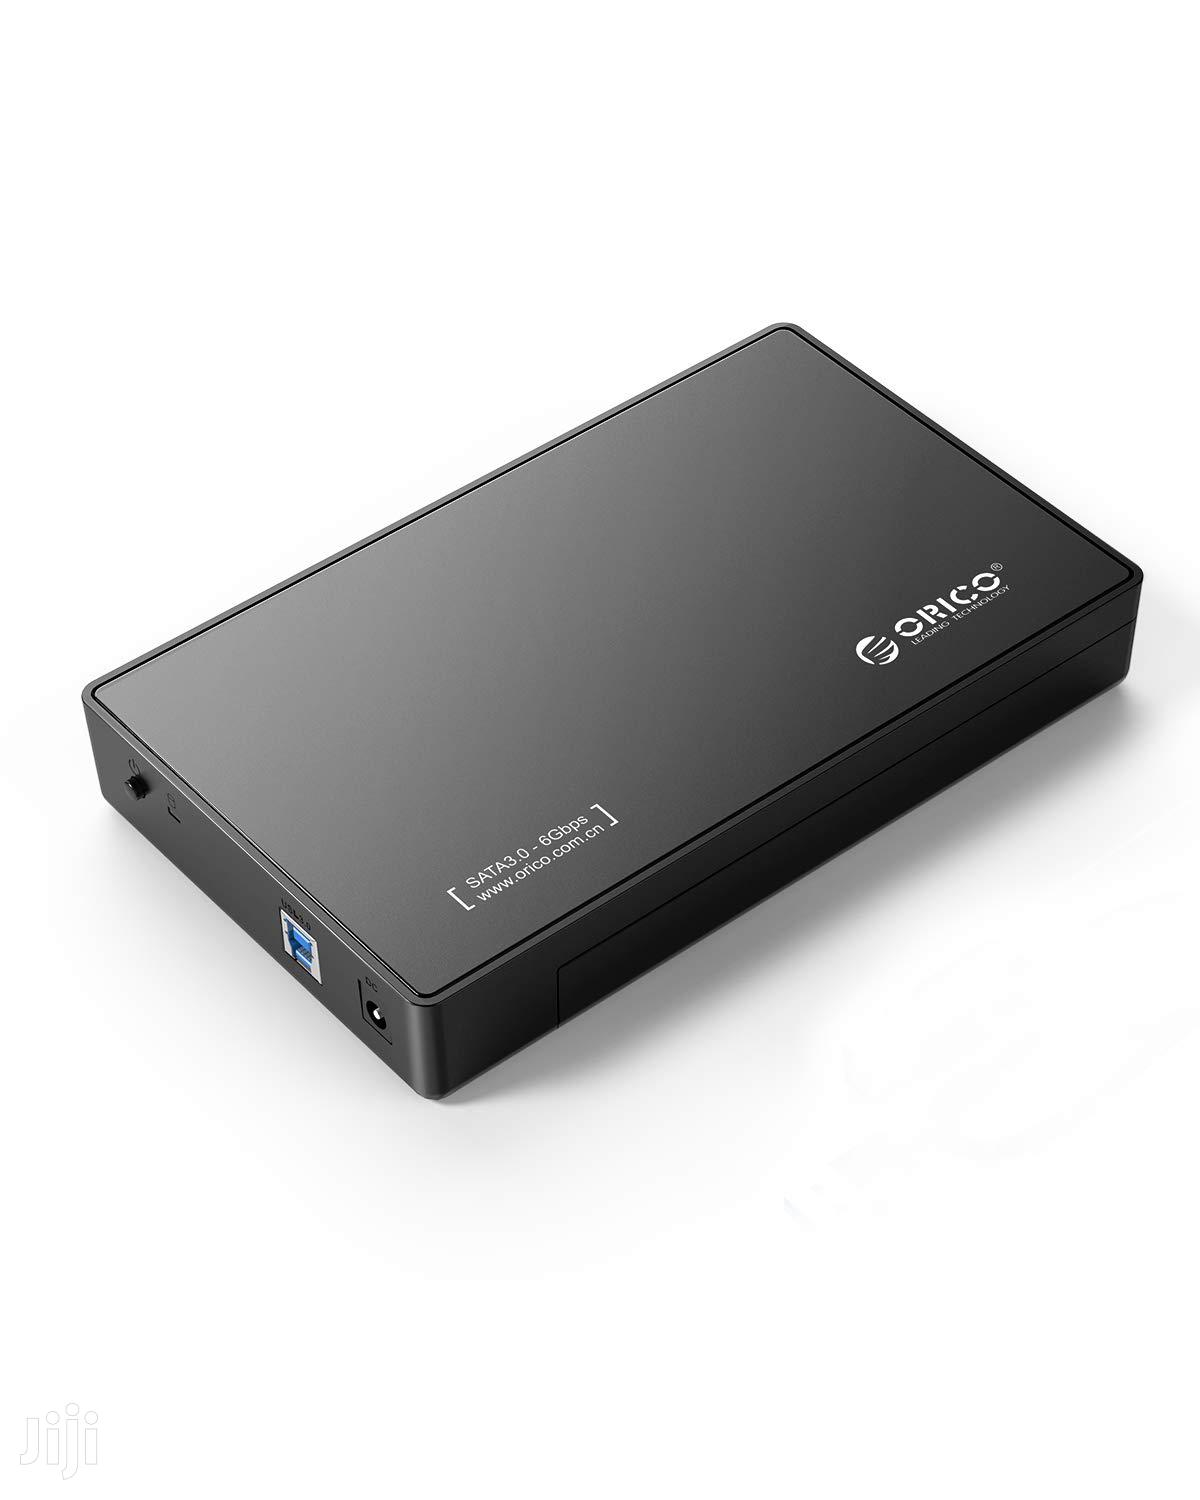 Desktop Sata HDD Case USB 3.0 | Computer Hardware for sale in Accra Metropolitan, Greater Accra, Ghana